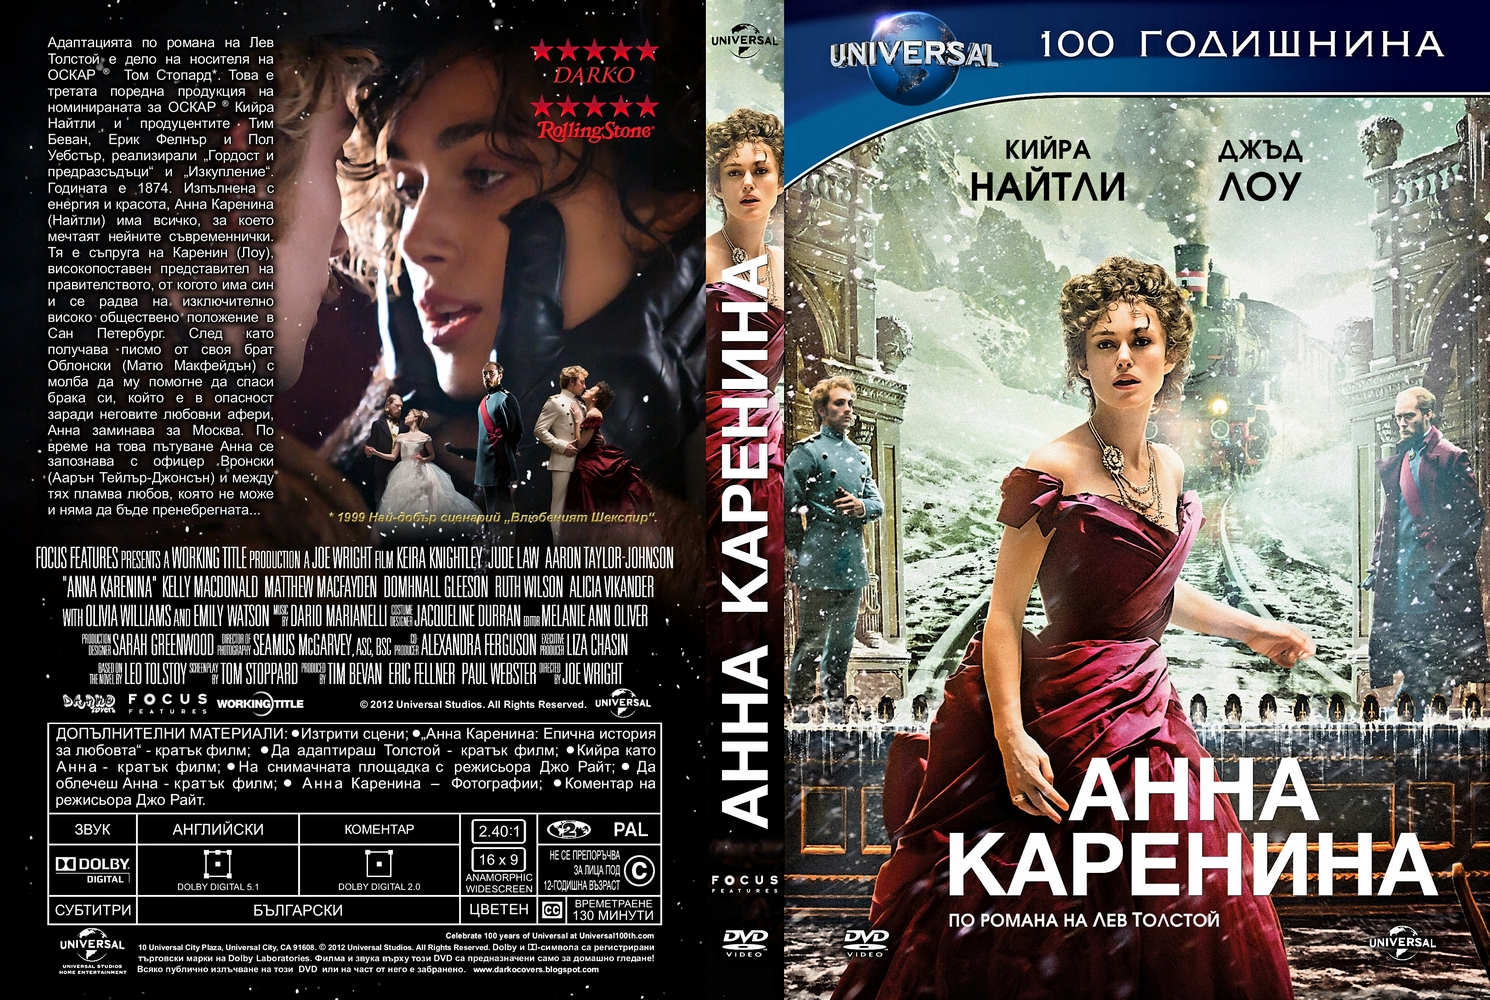 Anna Karenina Cover Dvd by darko